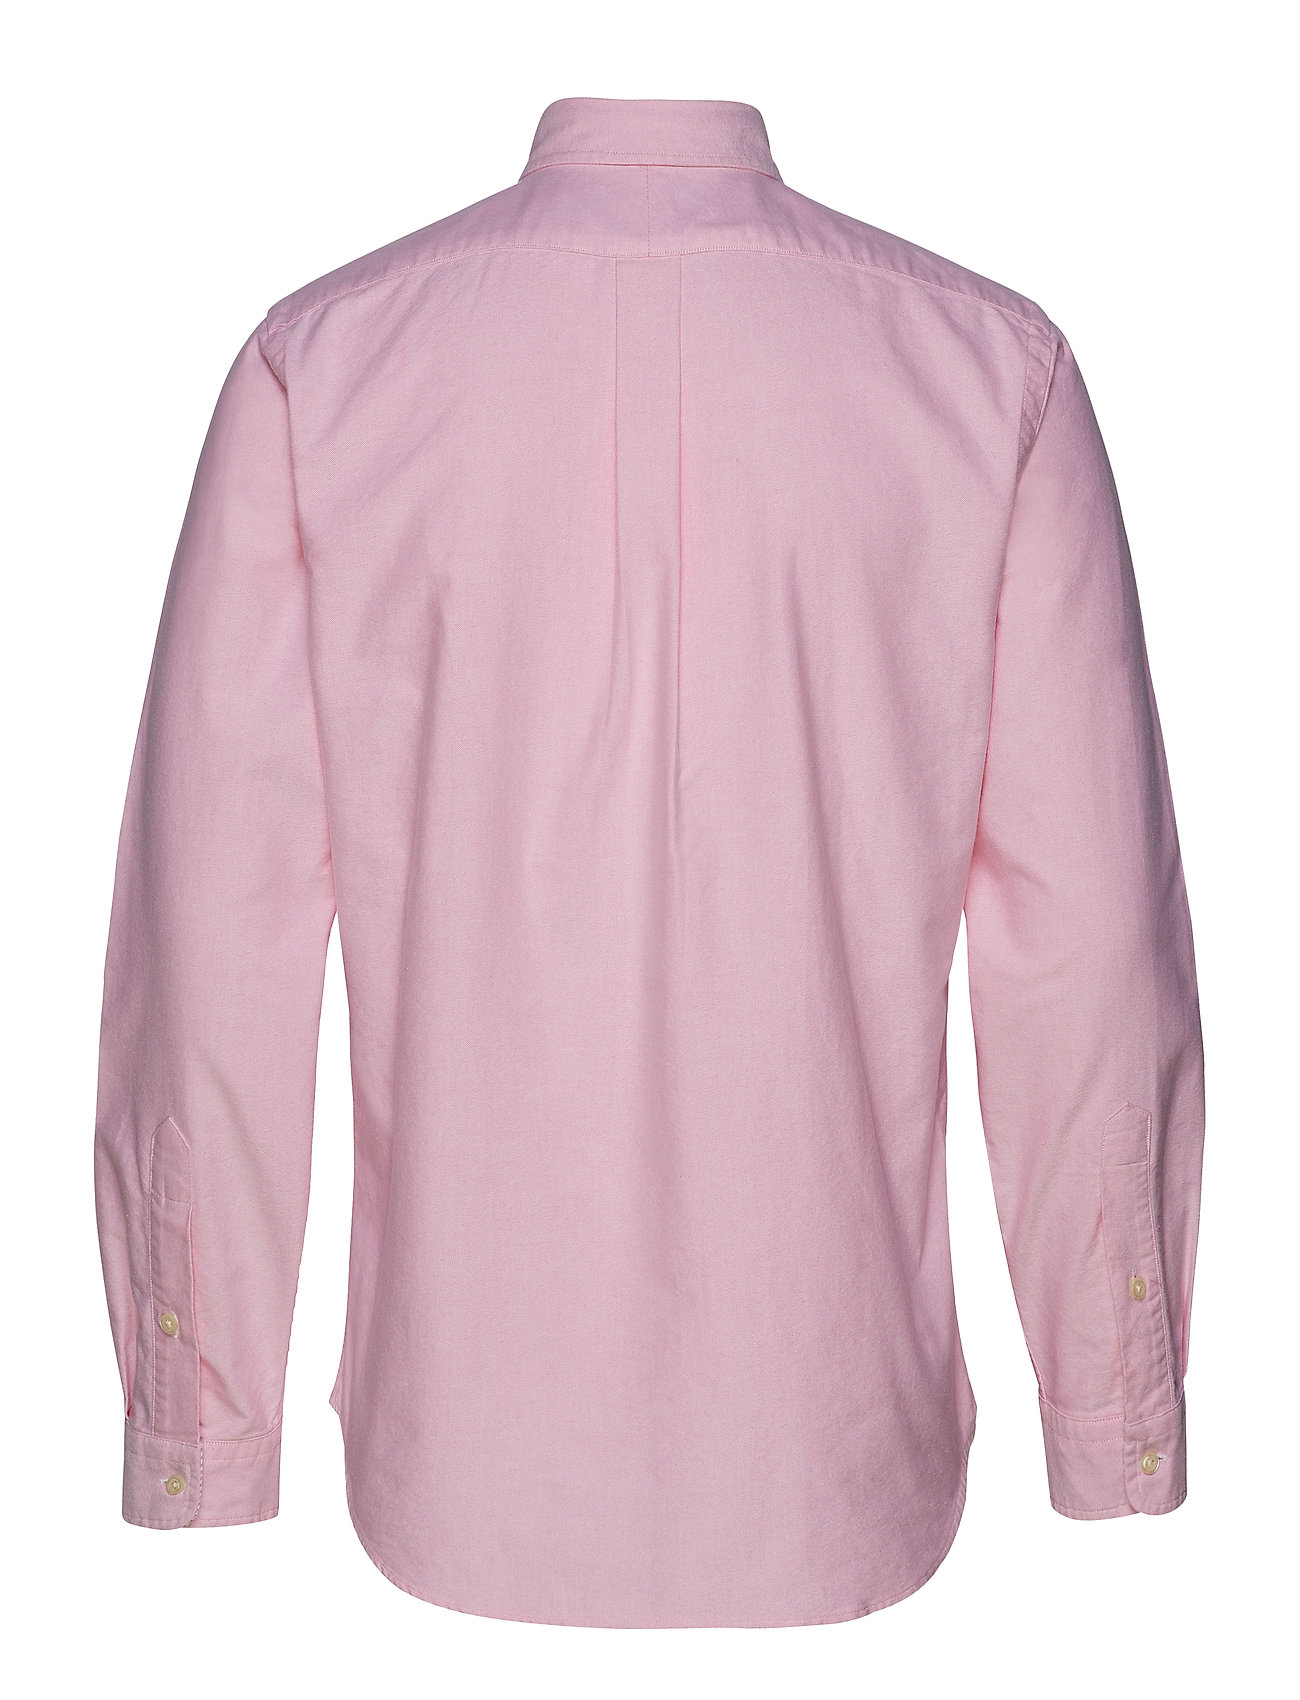 sport Ppc Bd long Cu Ralph Sp Shirtnew RosePolo Lauren Sleeve 9EH2DI